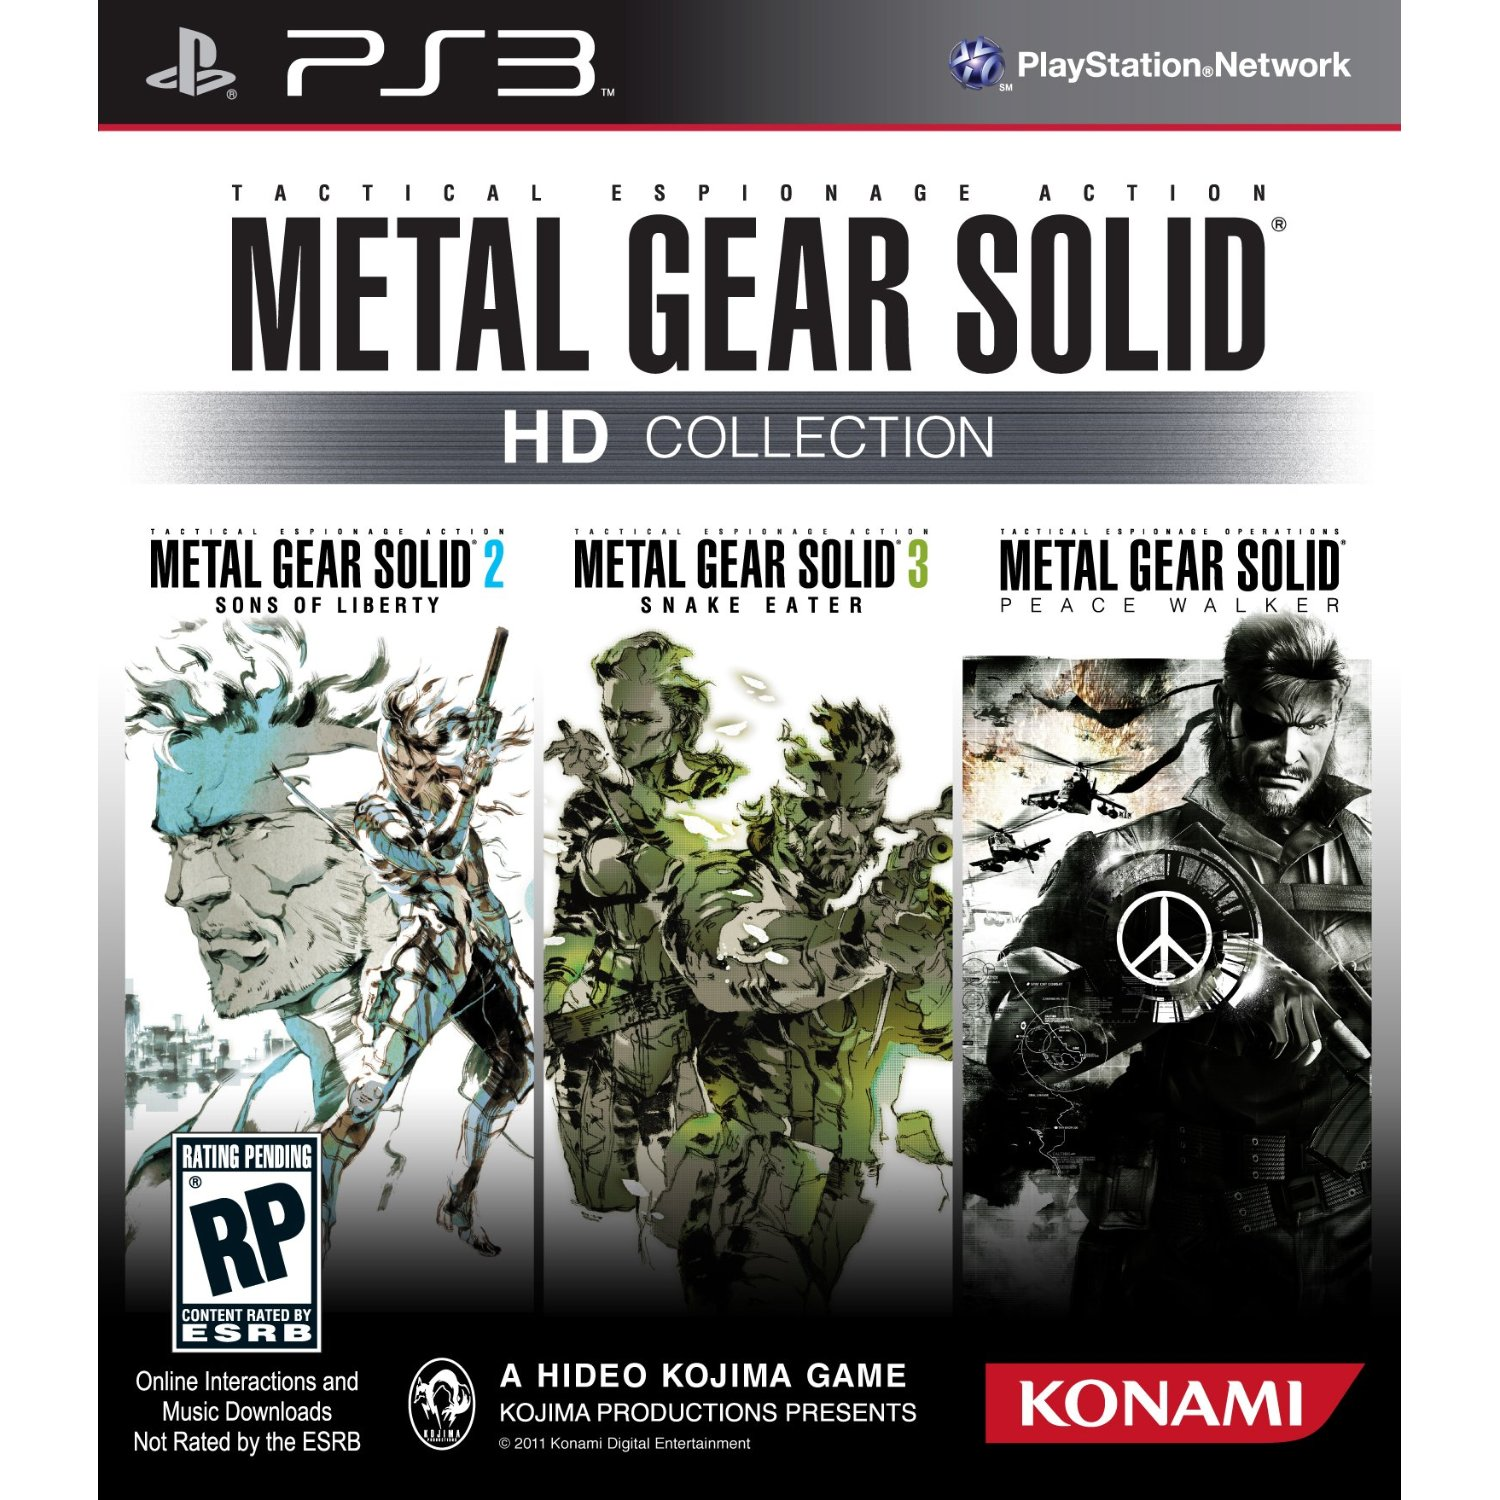 descargar metal gear solid 3 para pc en espanol